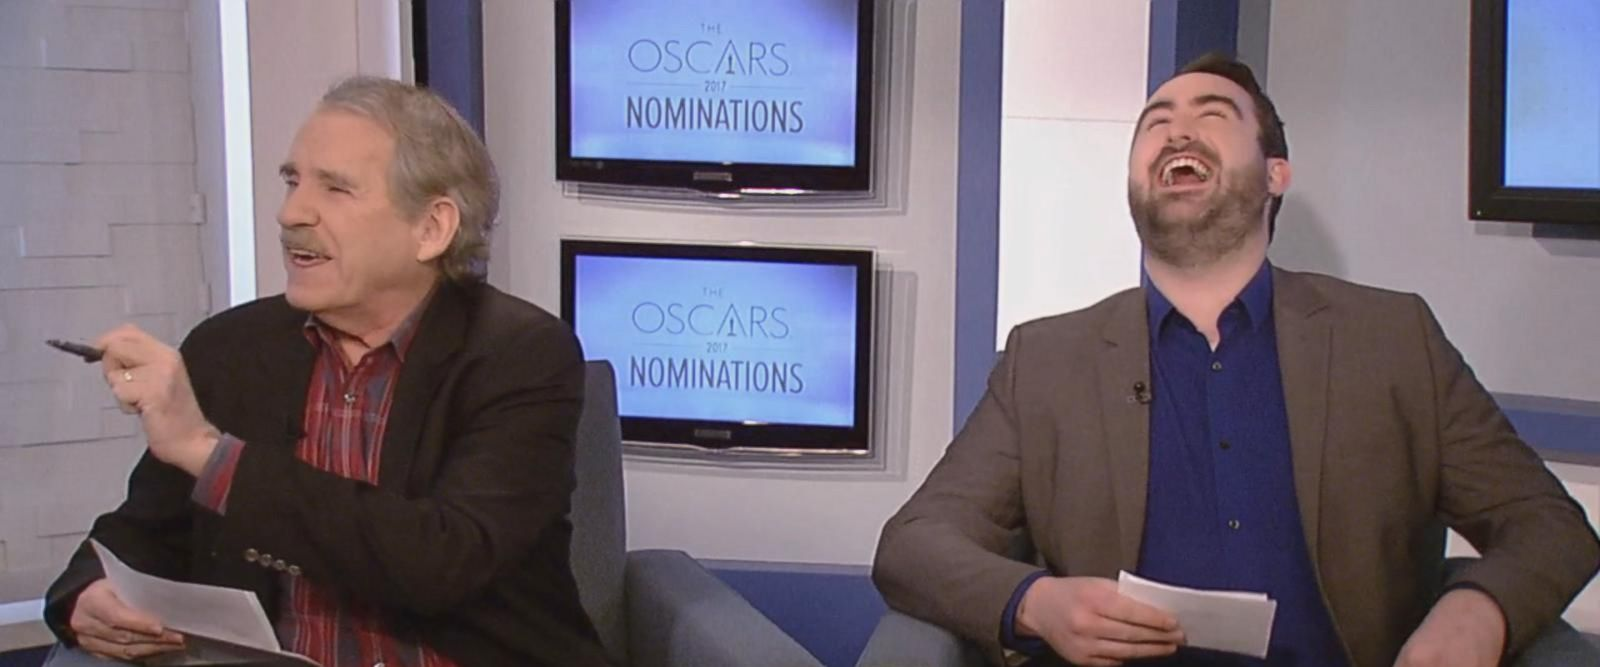 VIDEO: Surprises and Snubs From Best Picture, Best Director Oscar Nominees